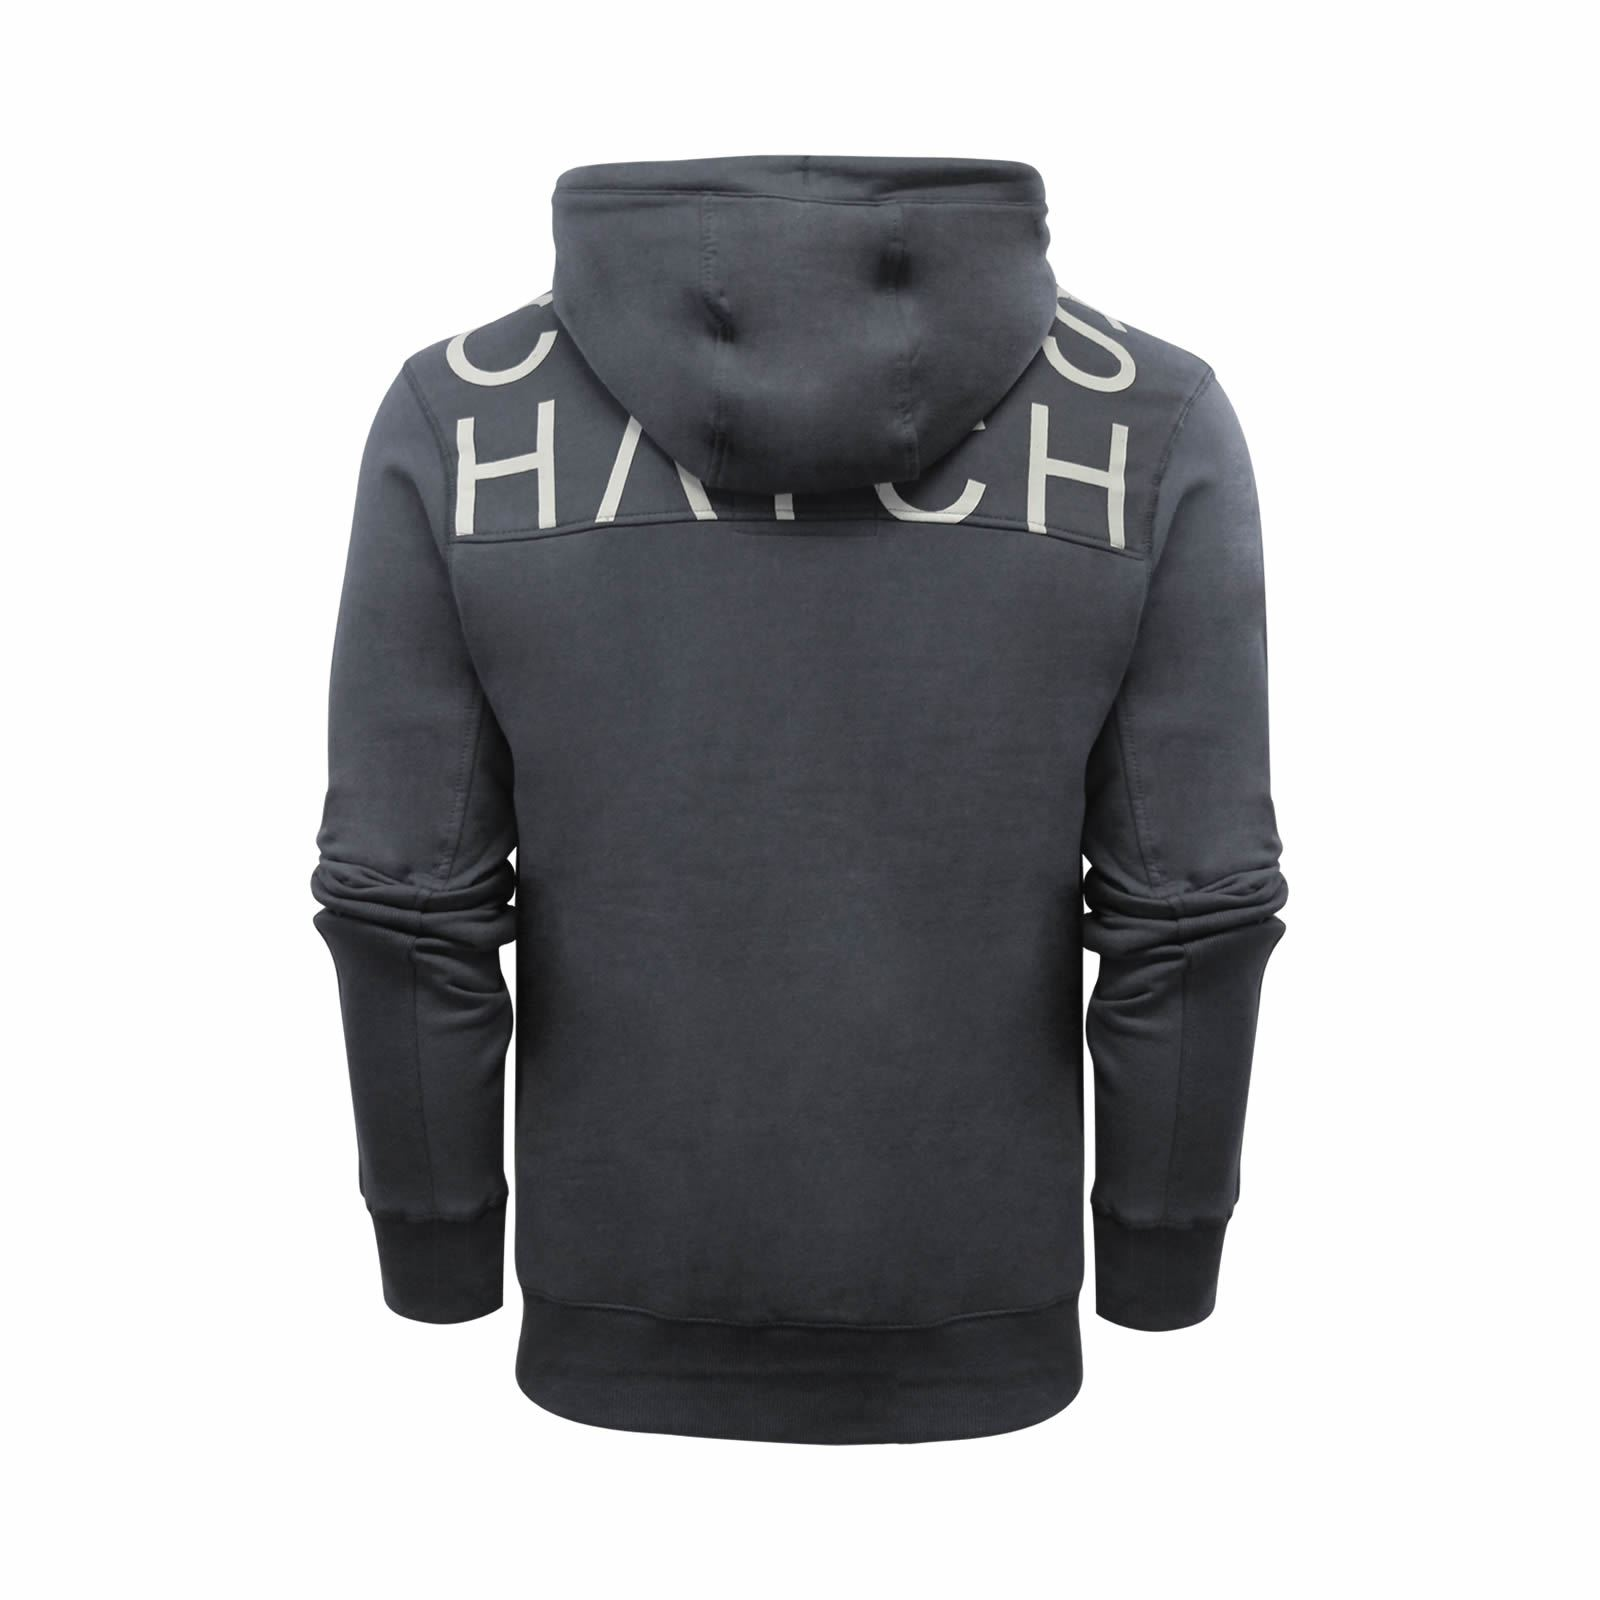 Mens-Hoodie-Crosshatch-Sunbirds-Cotton-Hooded-Pull-Over-Sweater thumbnail 3